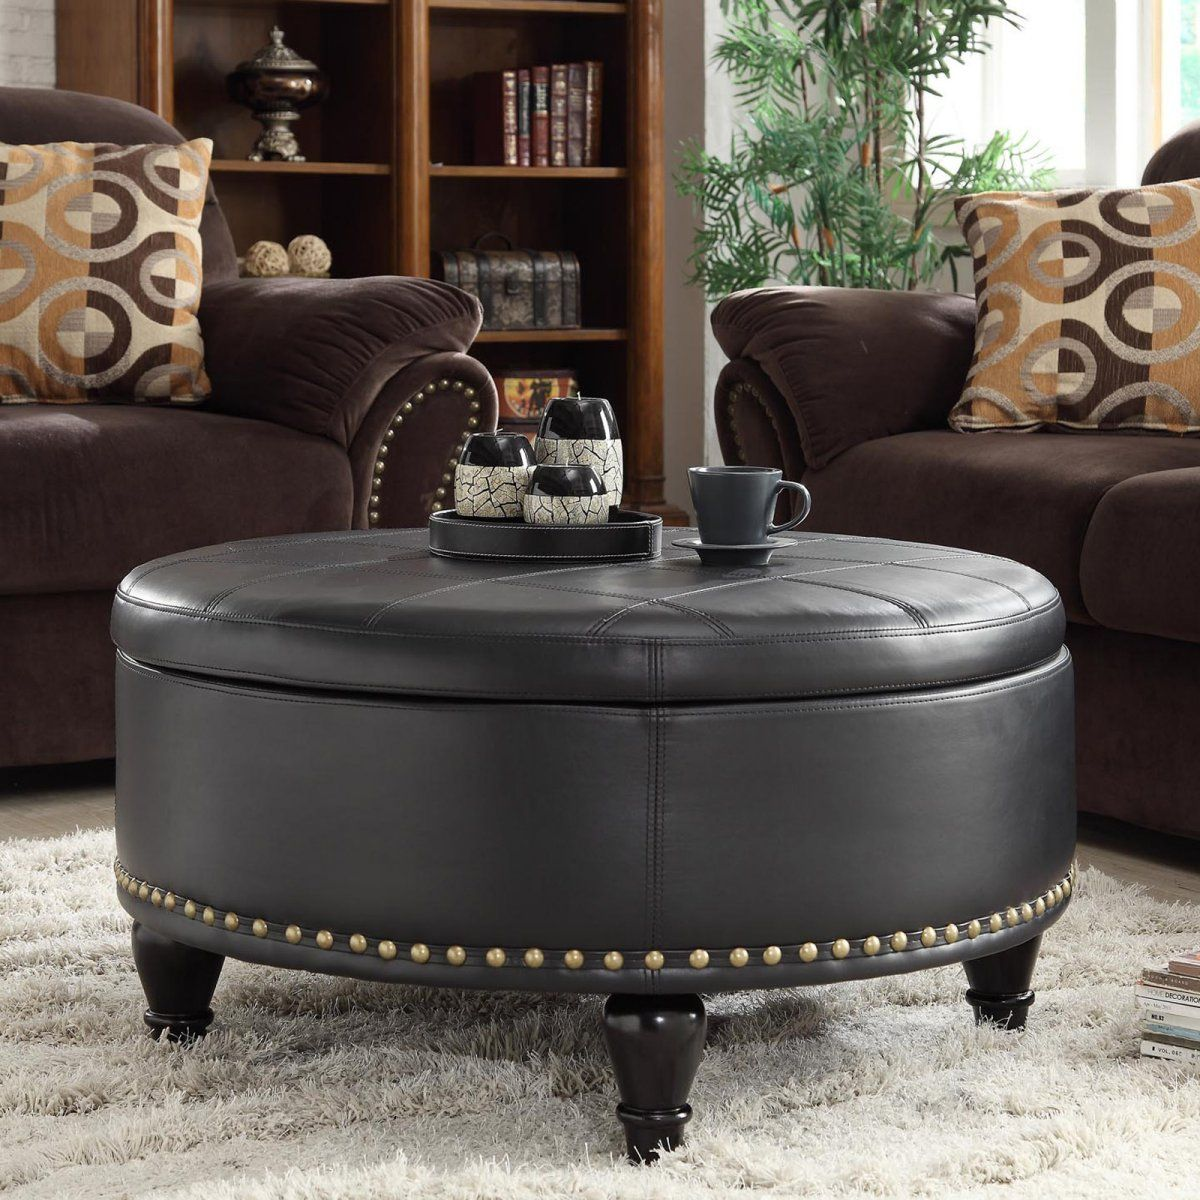 Park Art|My WordPress Blog_Round Leather Coffee Table With Legs